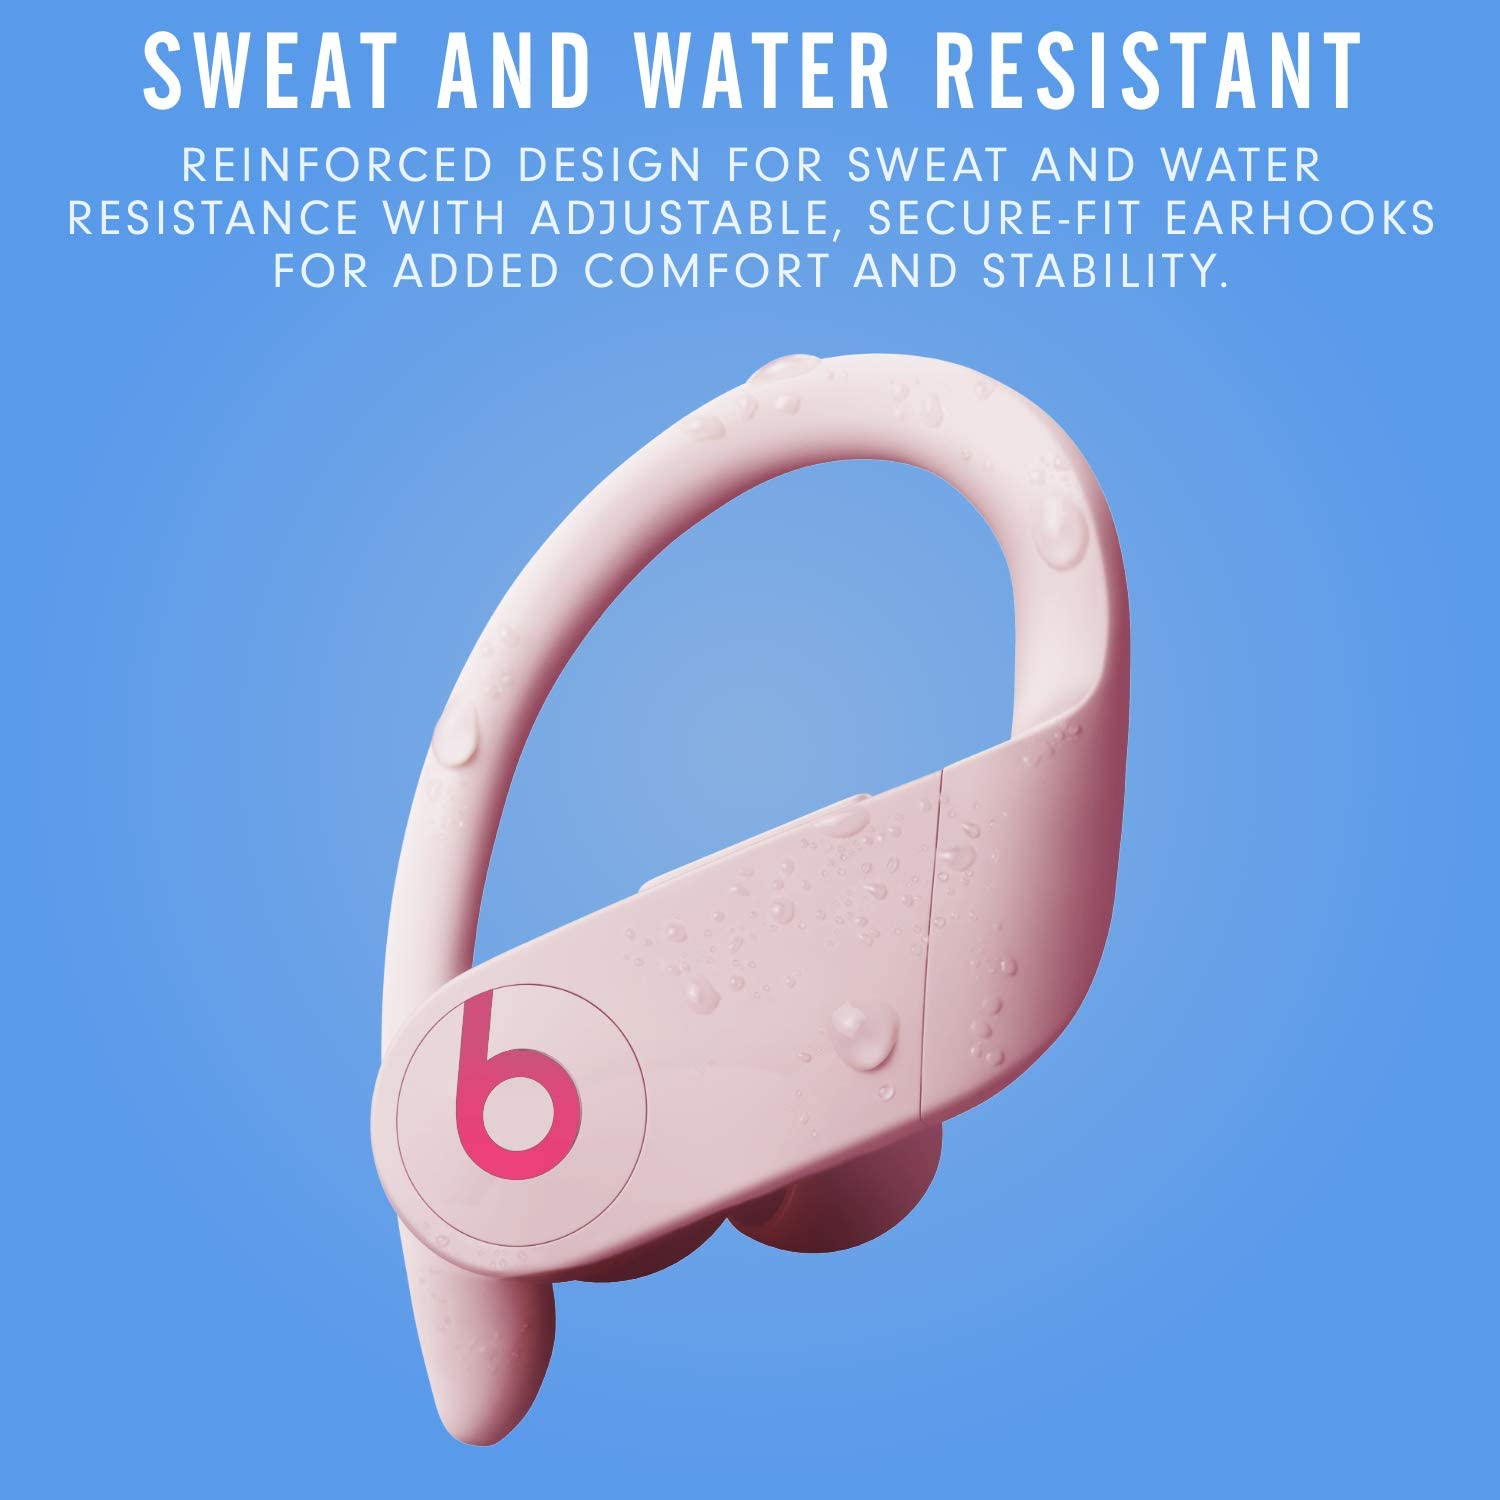 9 Hours of Listening Time Class 1 Bluetooth Apple H1 Headphone Chip Cloud Pink Sweat-Resistant Earbuds Powerbeats Pro Totally Wireless Earphones